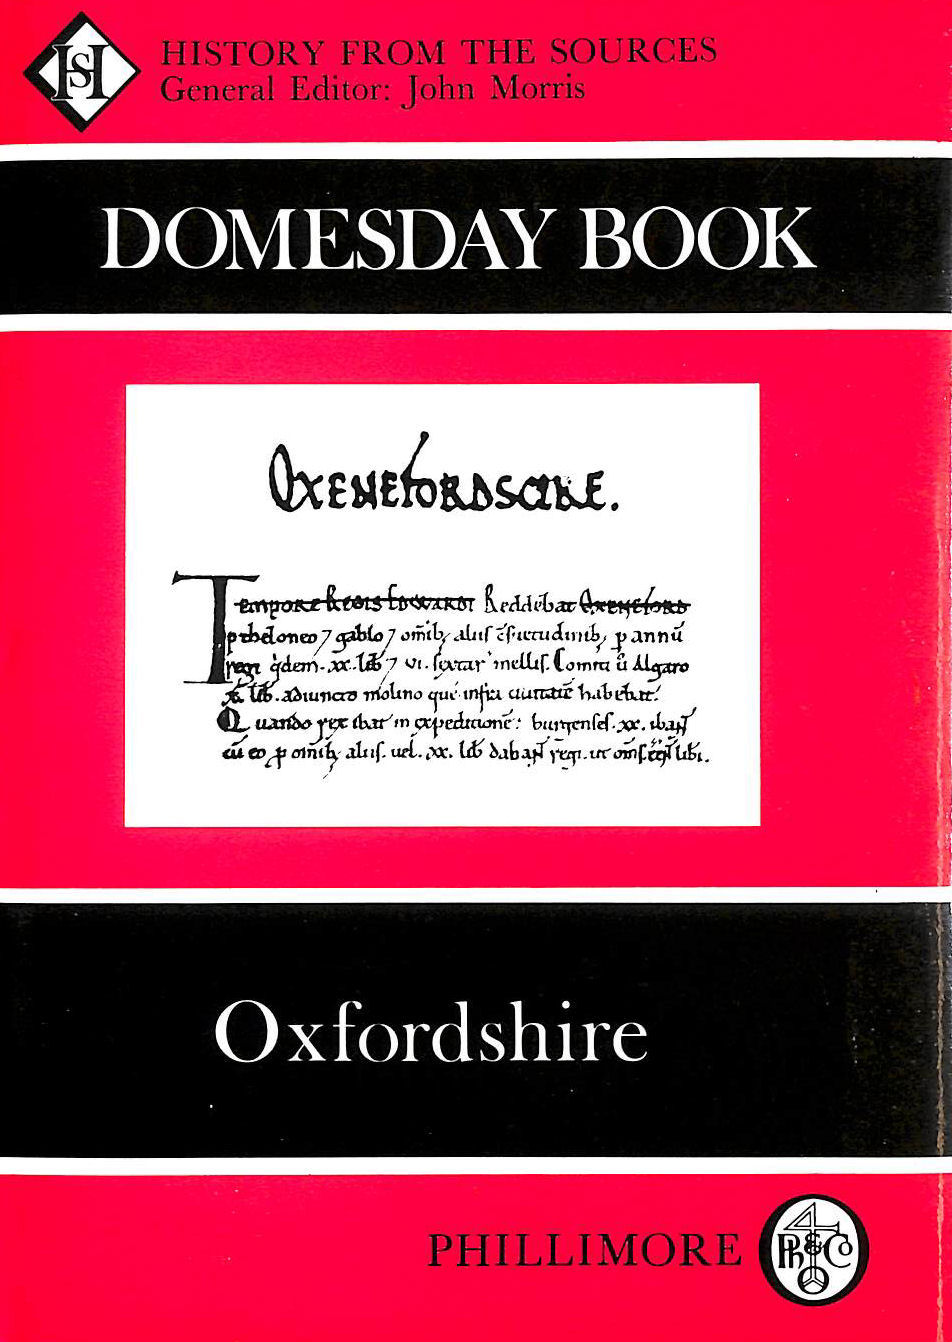 Image for The Domesday Book: Oxfordshire (Domesday Books (Phillimore)): History From the Sources